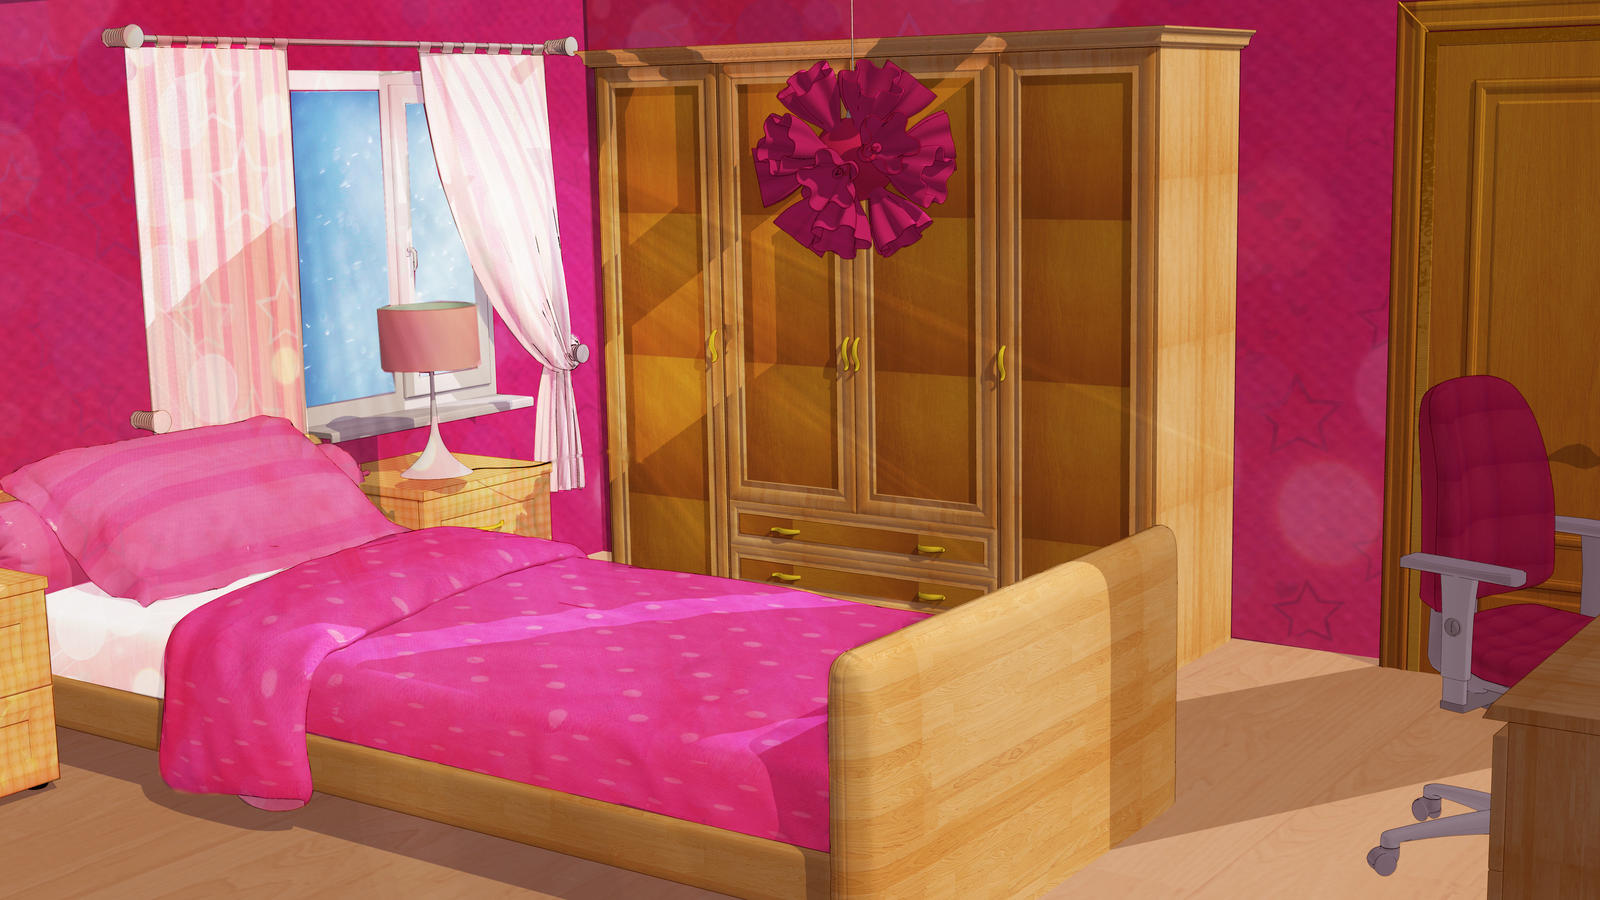 Image Result For Cartoon Bedroom Furniture